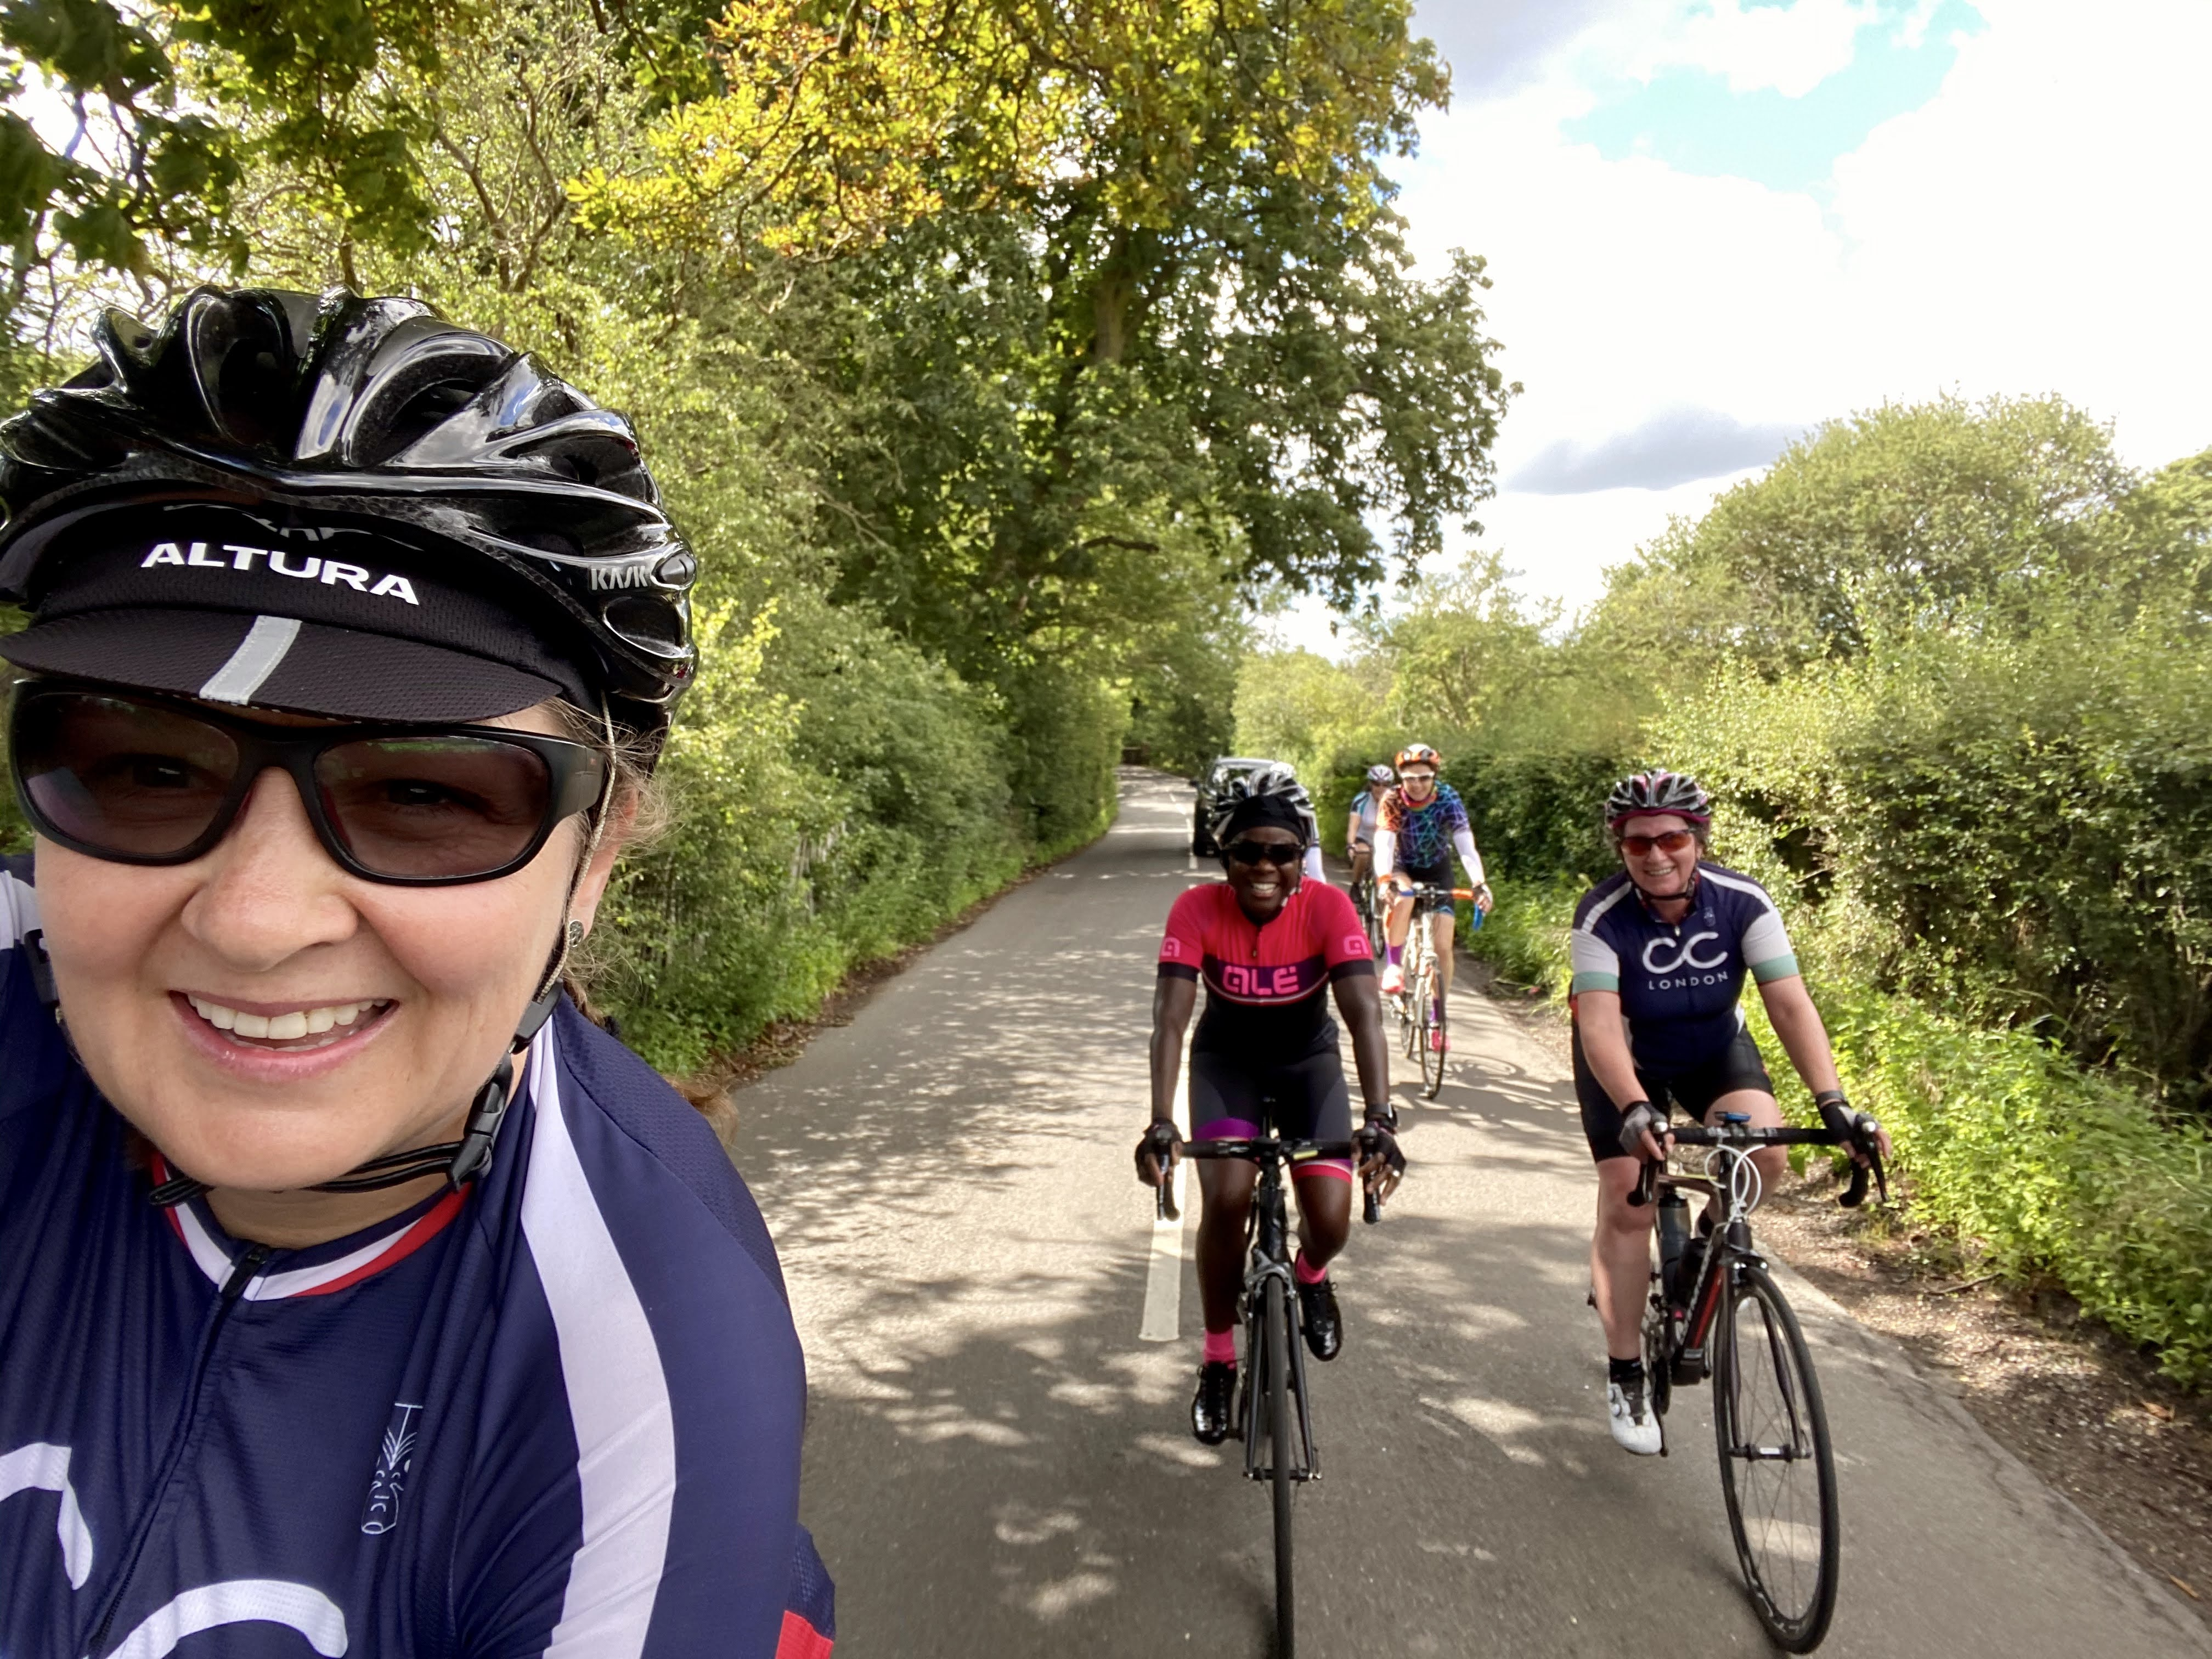 A group of women riding their bikes on a road as part of a cycling club ride